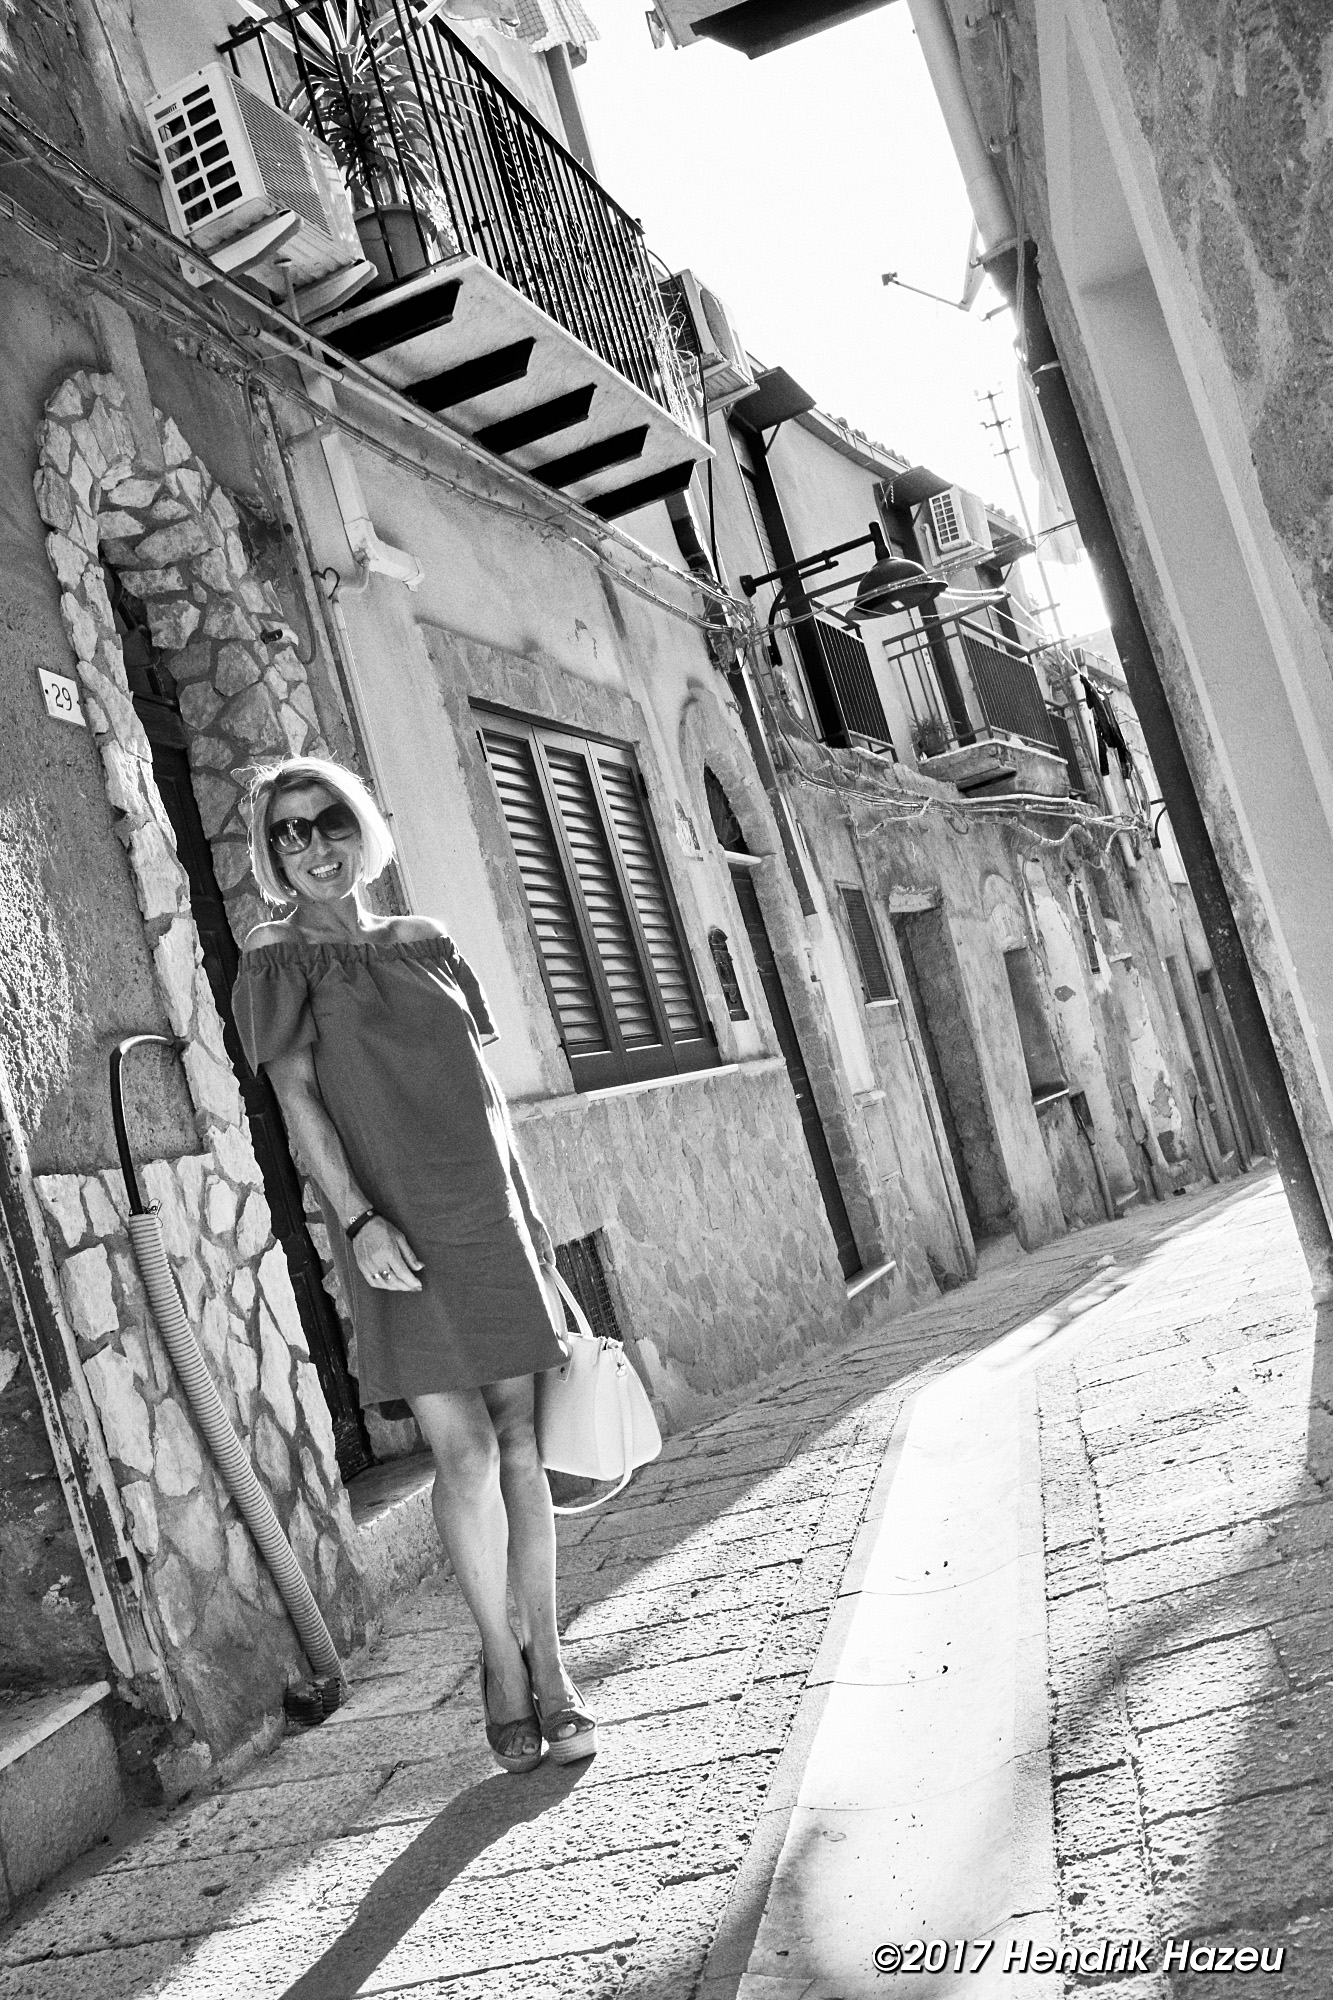 Italian fashion shoot with Fuji X100F, developed in Capture One BW-15 (grey) style